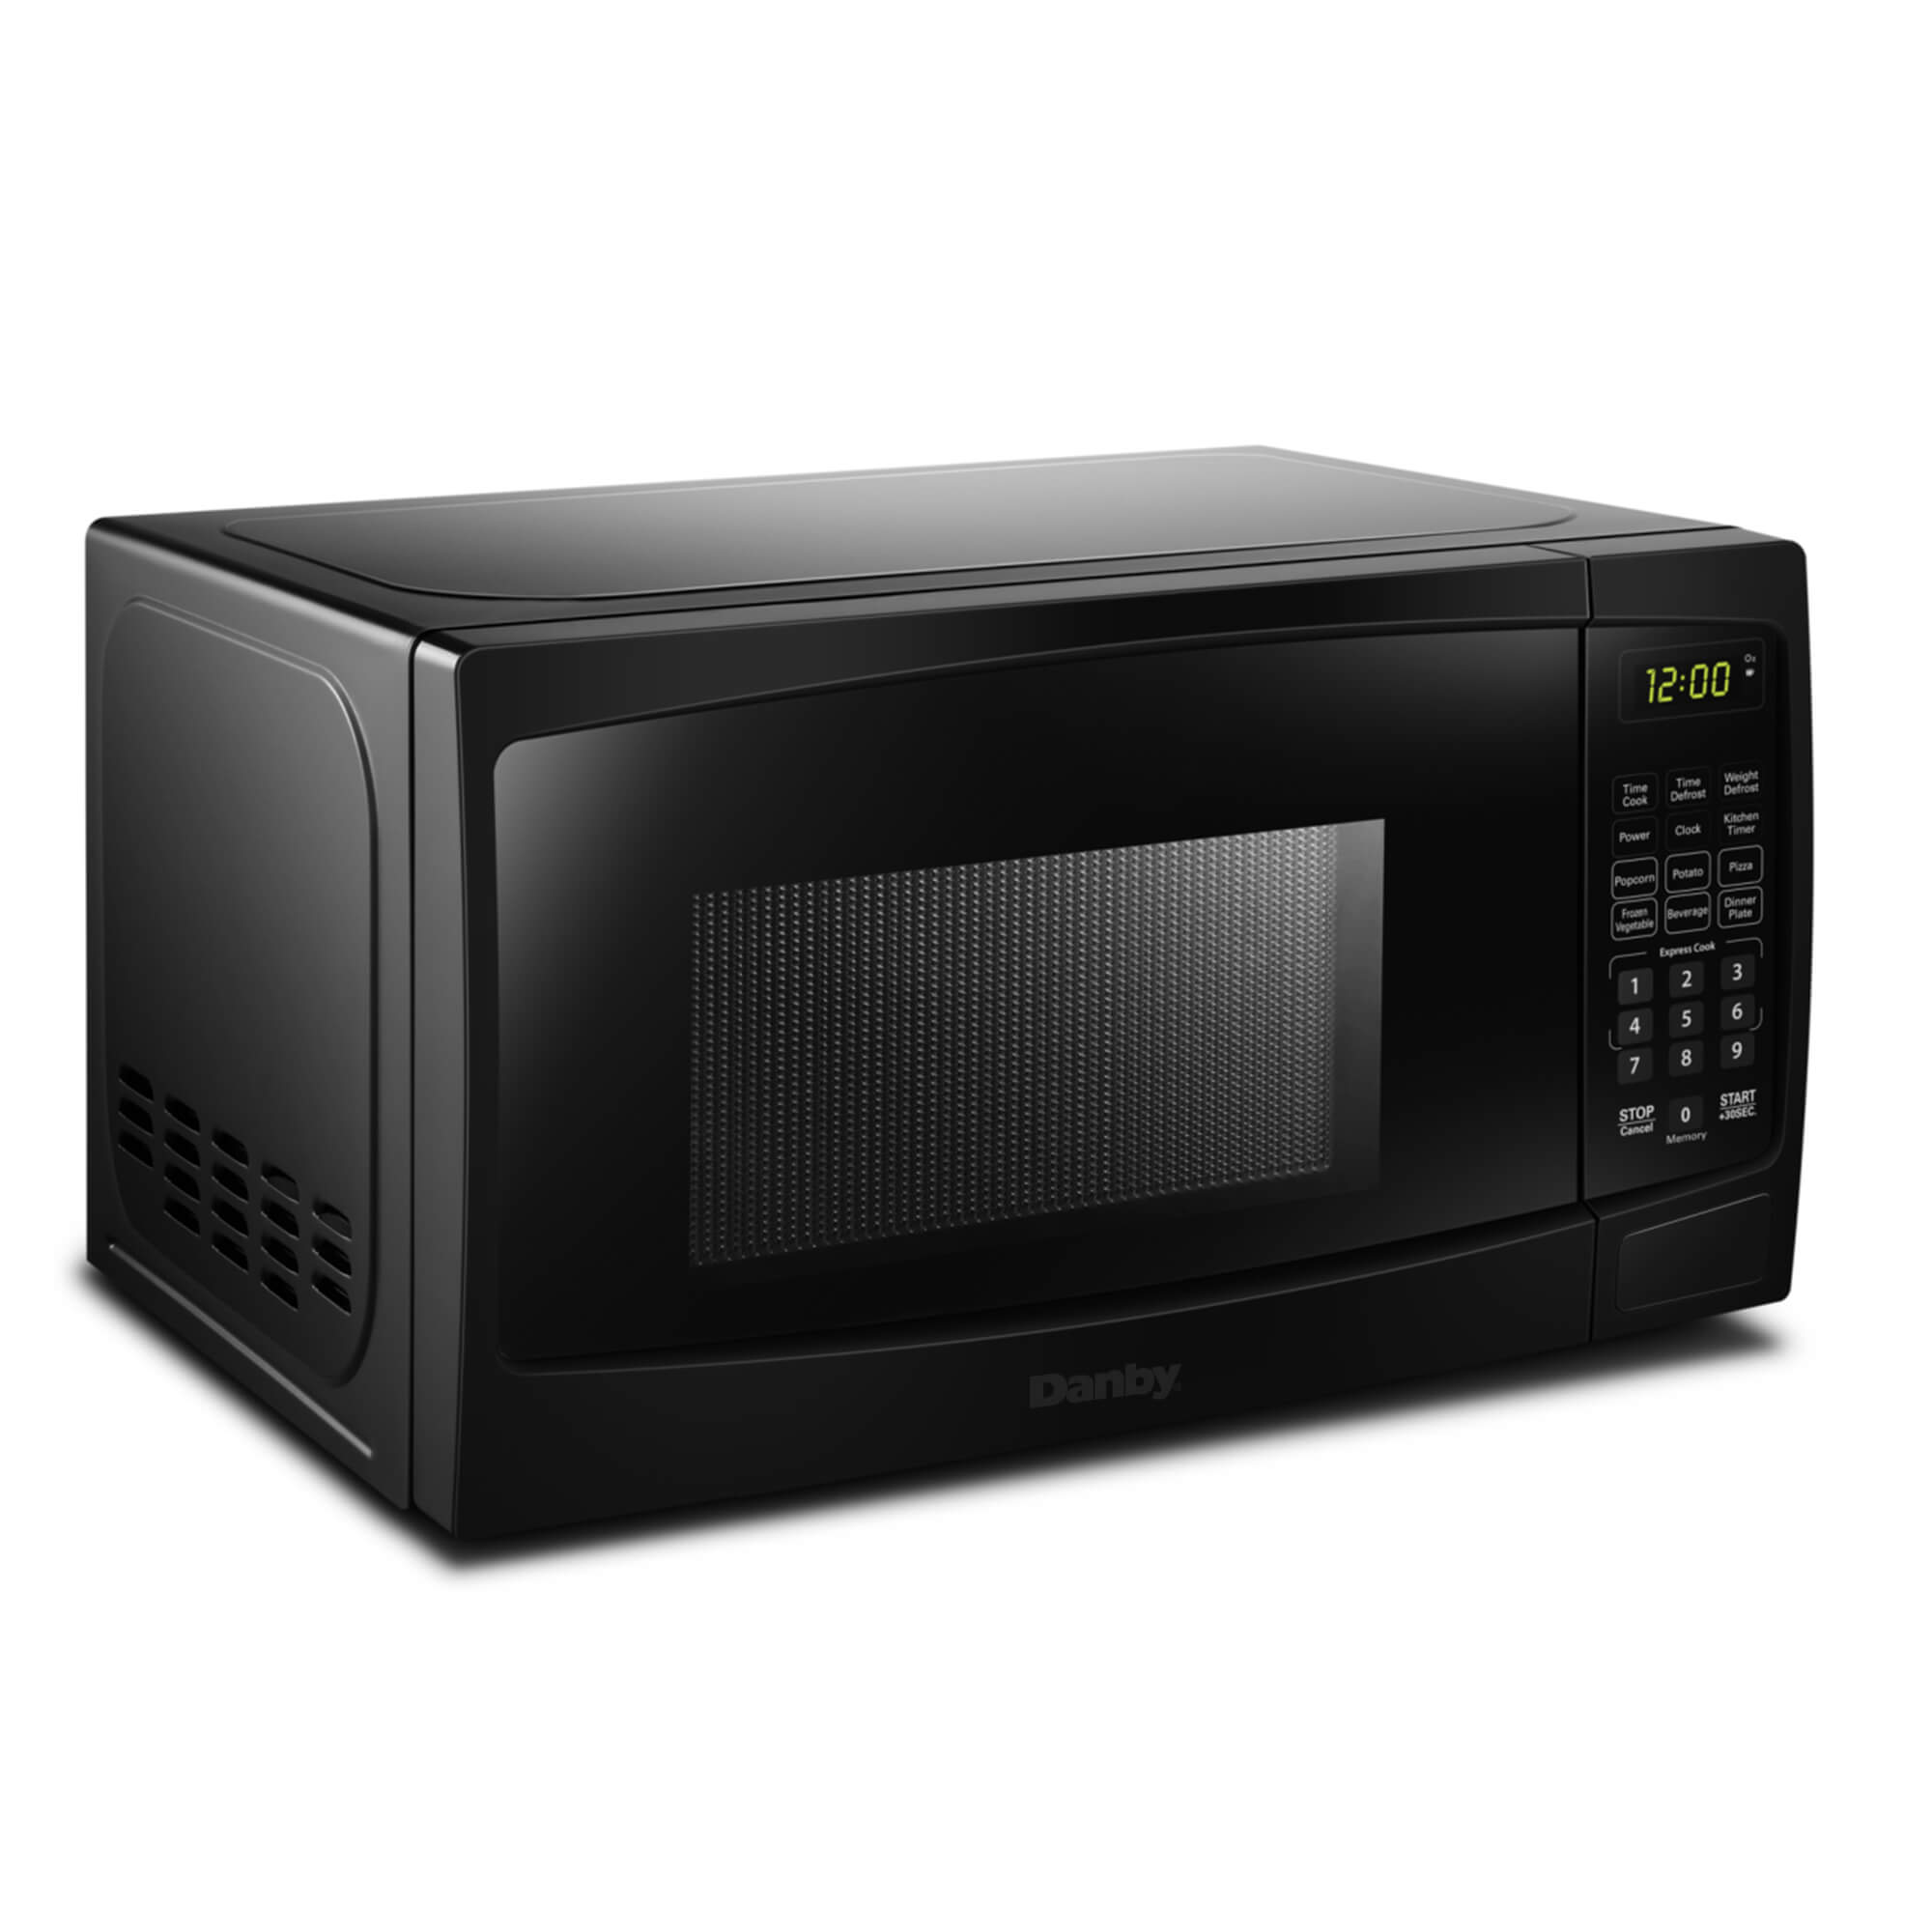 1.1 CU. FT. DANBY® STAINLESS STEEL MICROWAVE